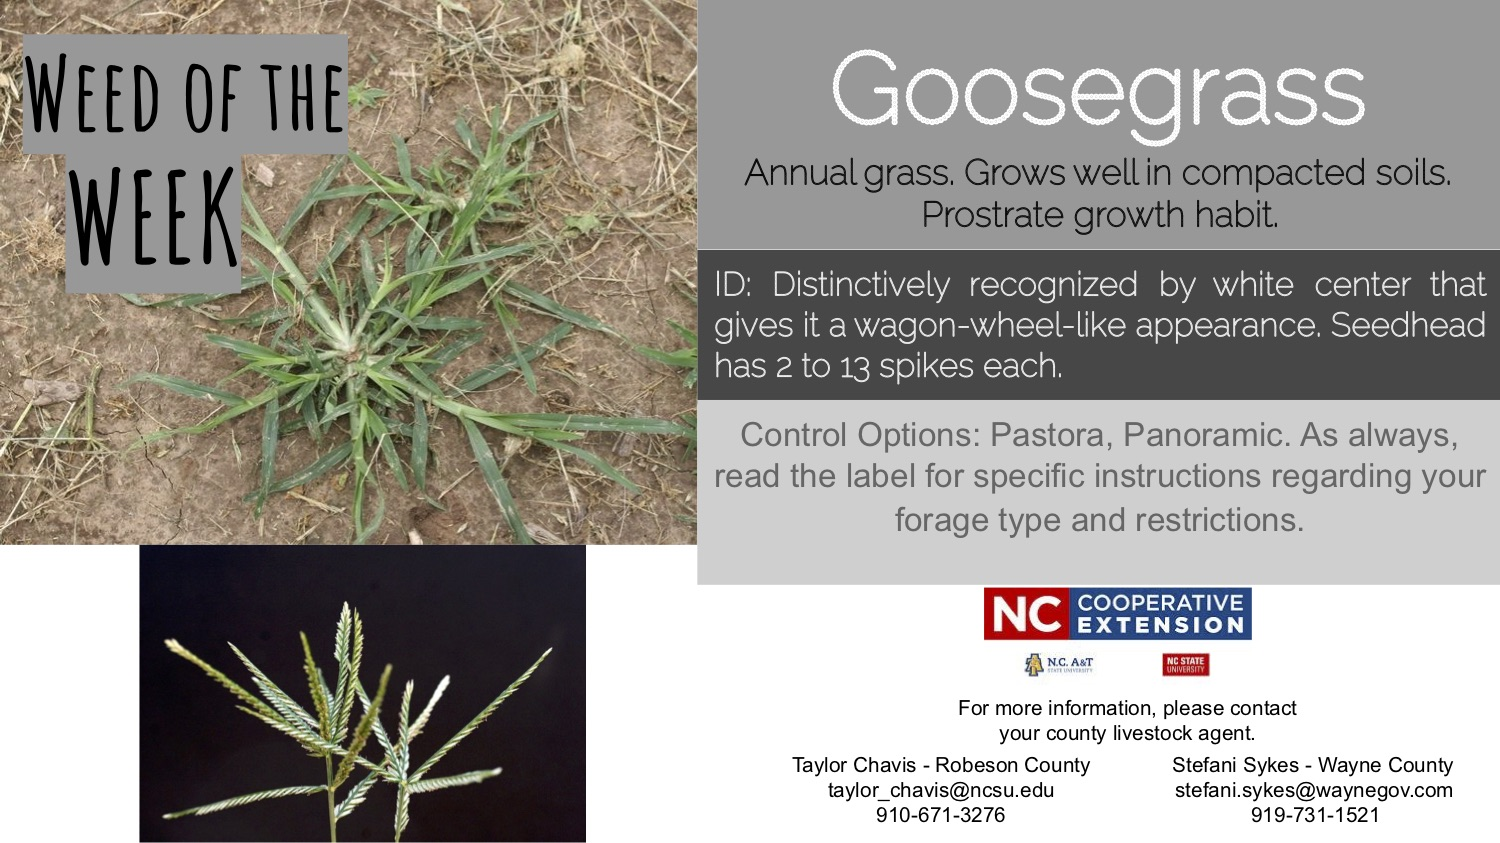 Information on the weed goosegrass